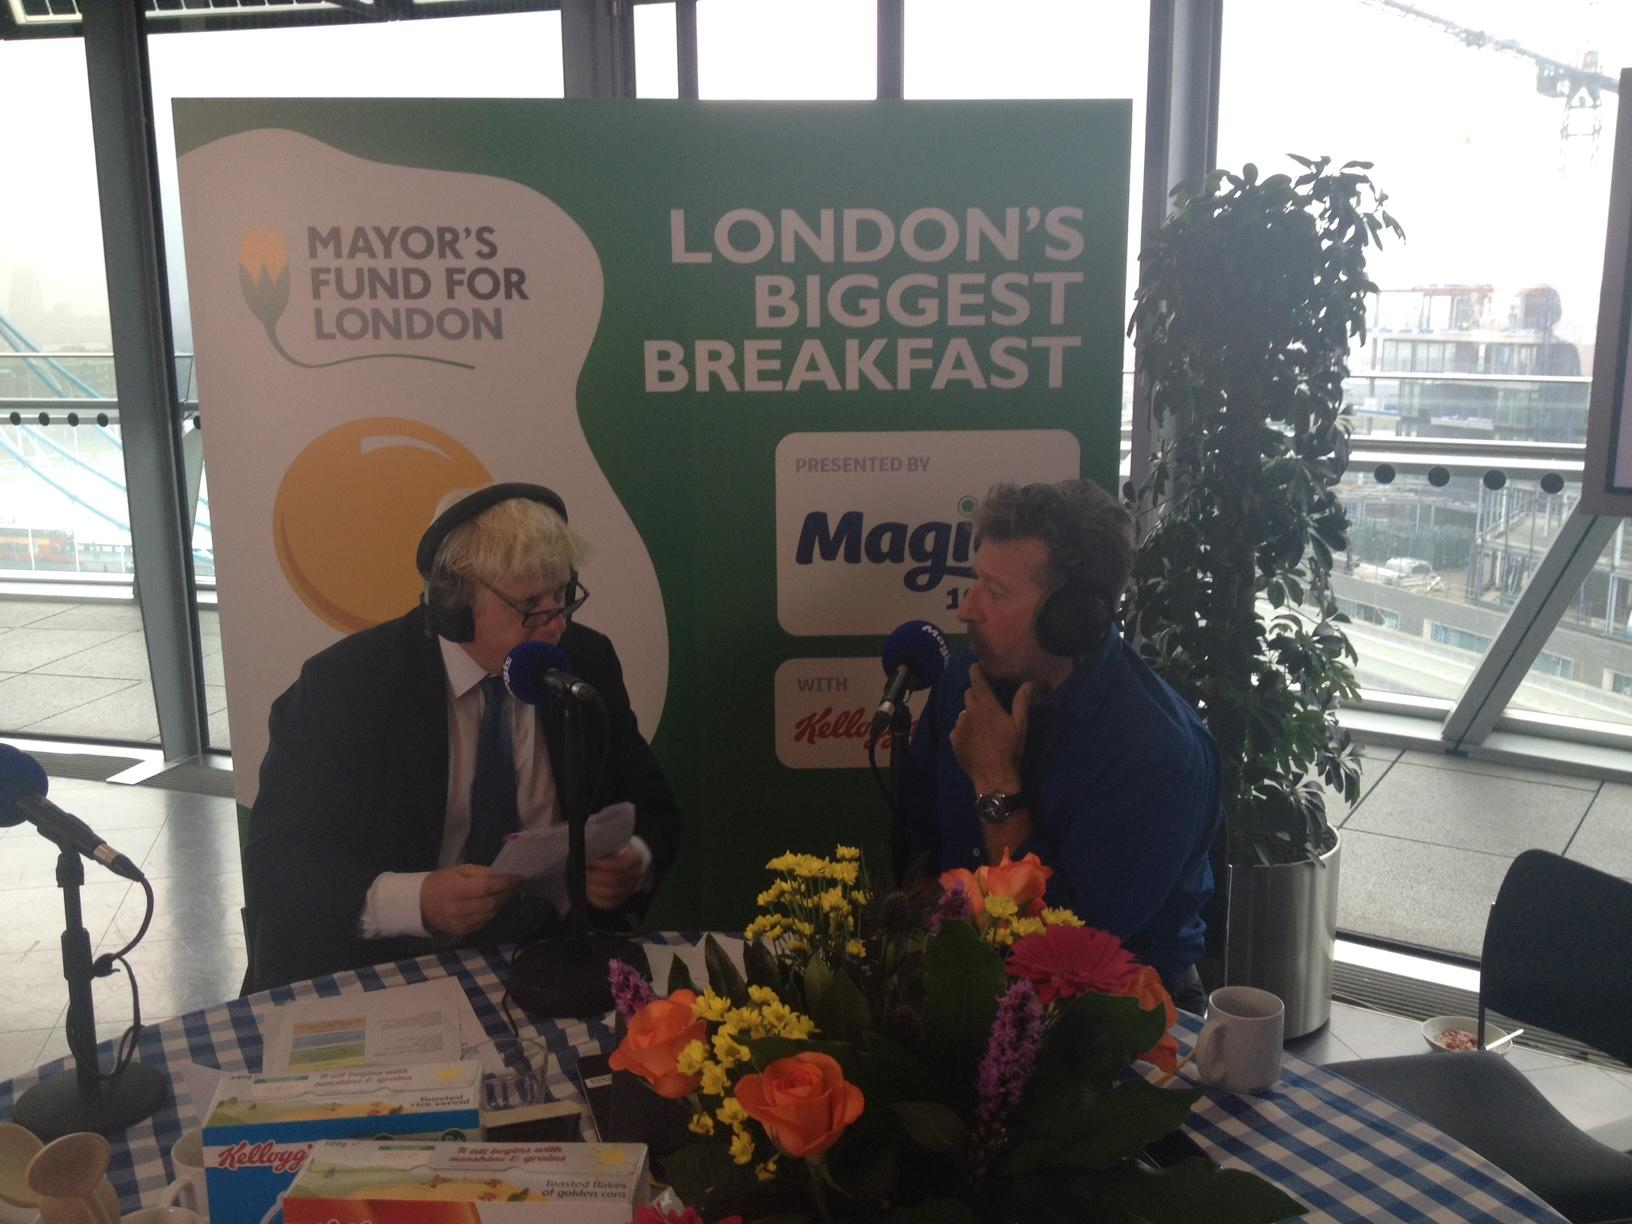 No London child should go hungry. #LondonsBiggestBreakfast held in City Hall this morning http://t.co/b4TauXWYu3 http://t.co/LeABotWD3K